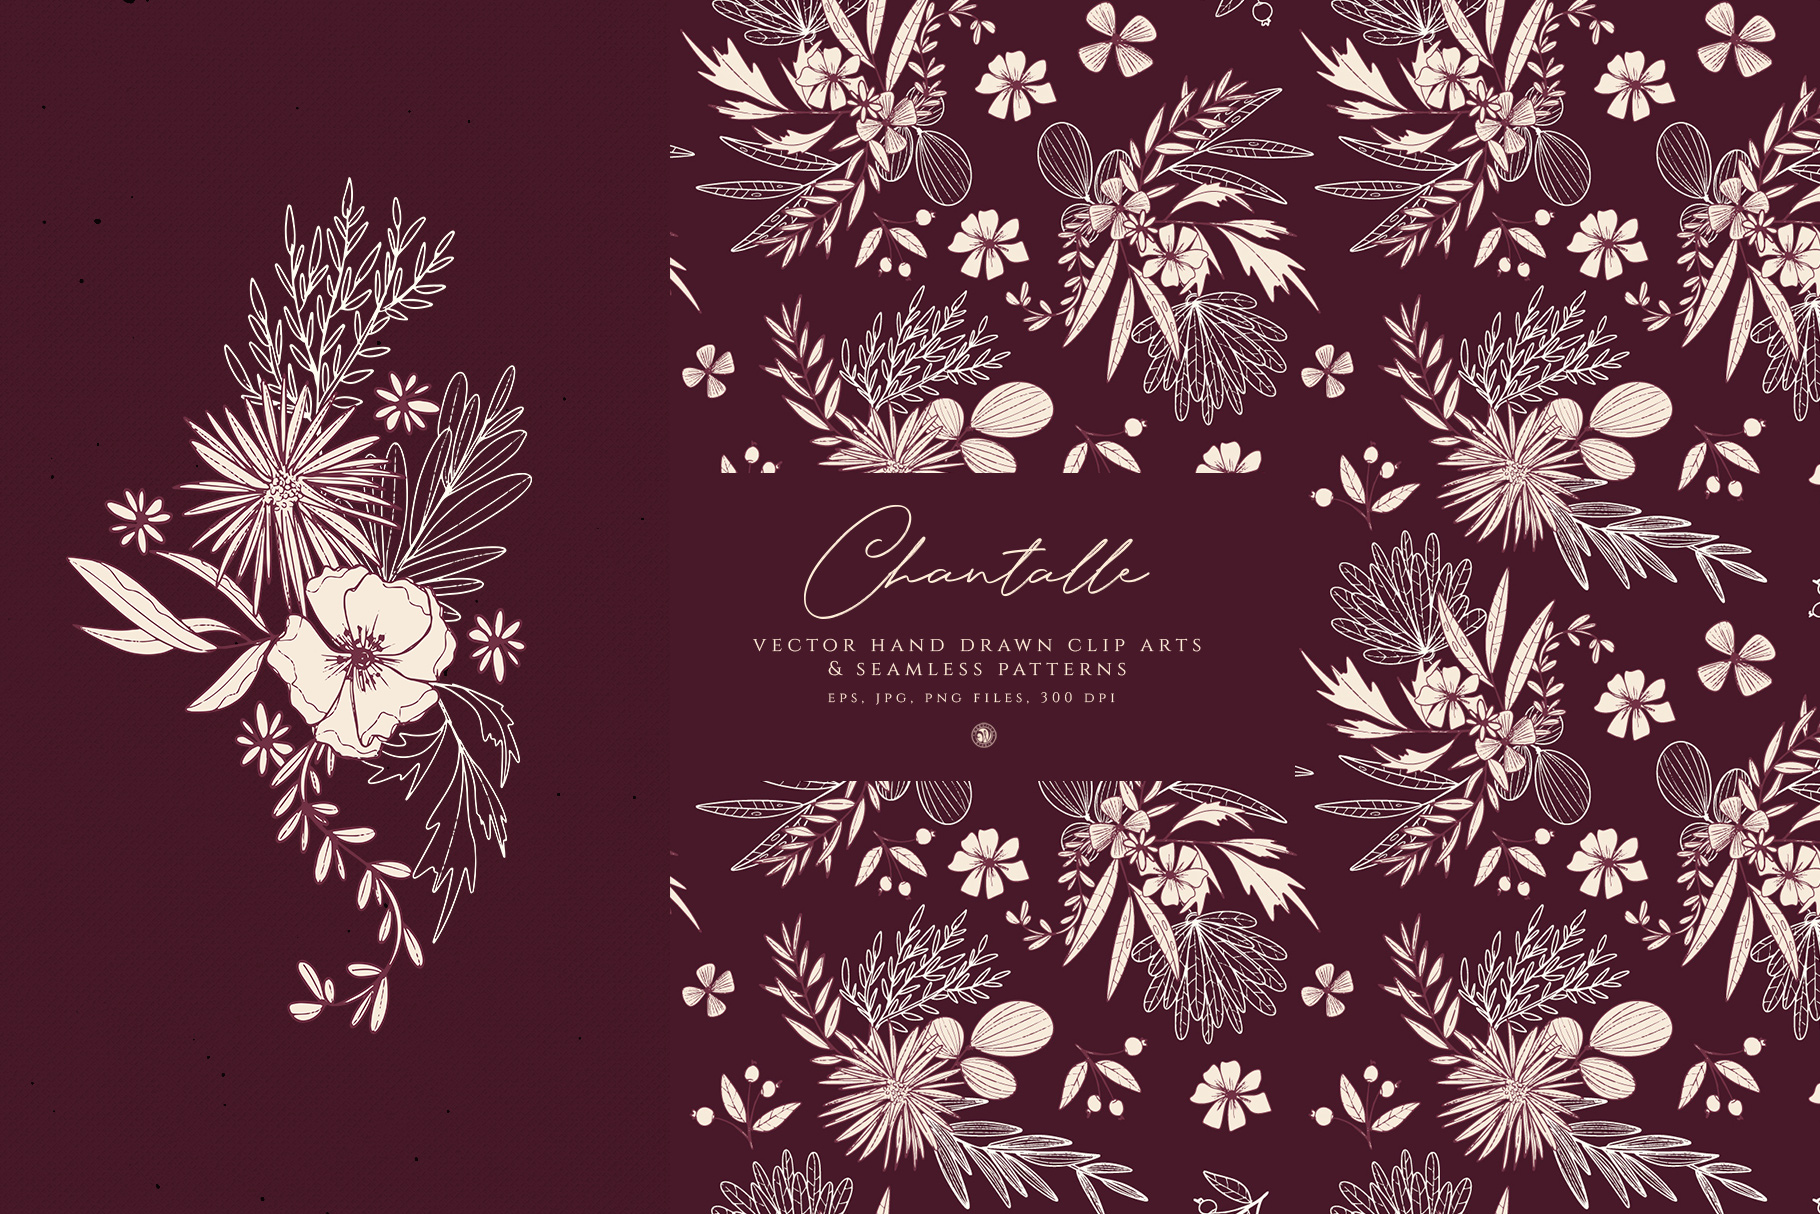 Chantalle Flowers example image 3